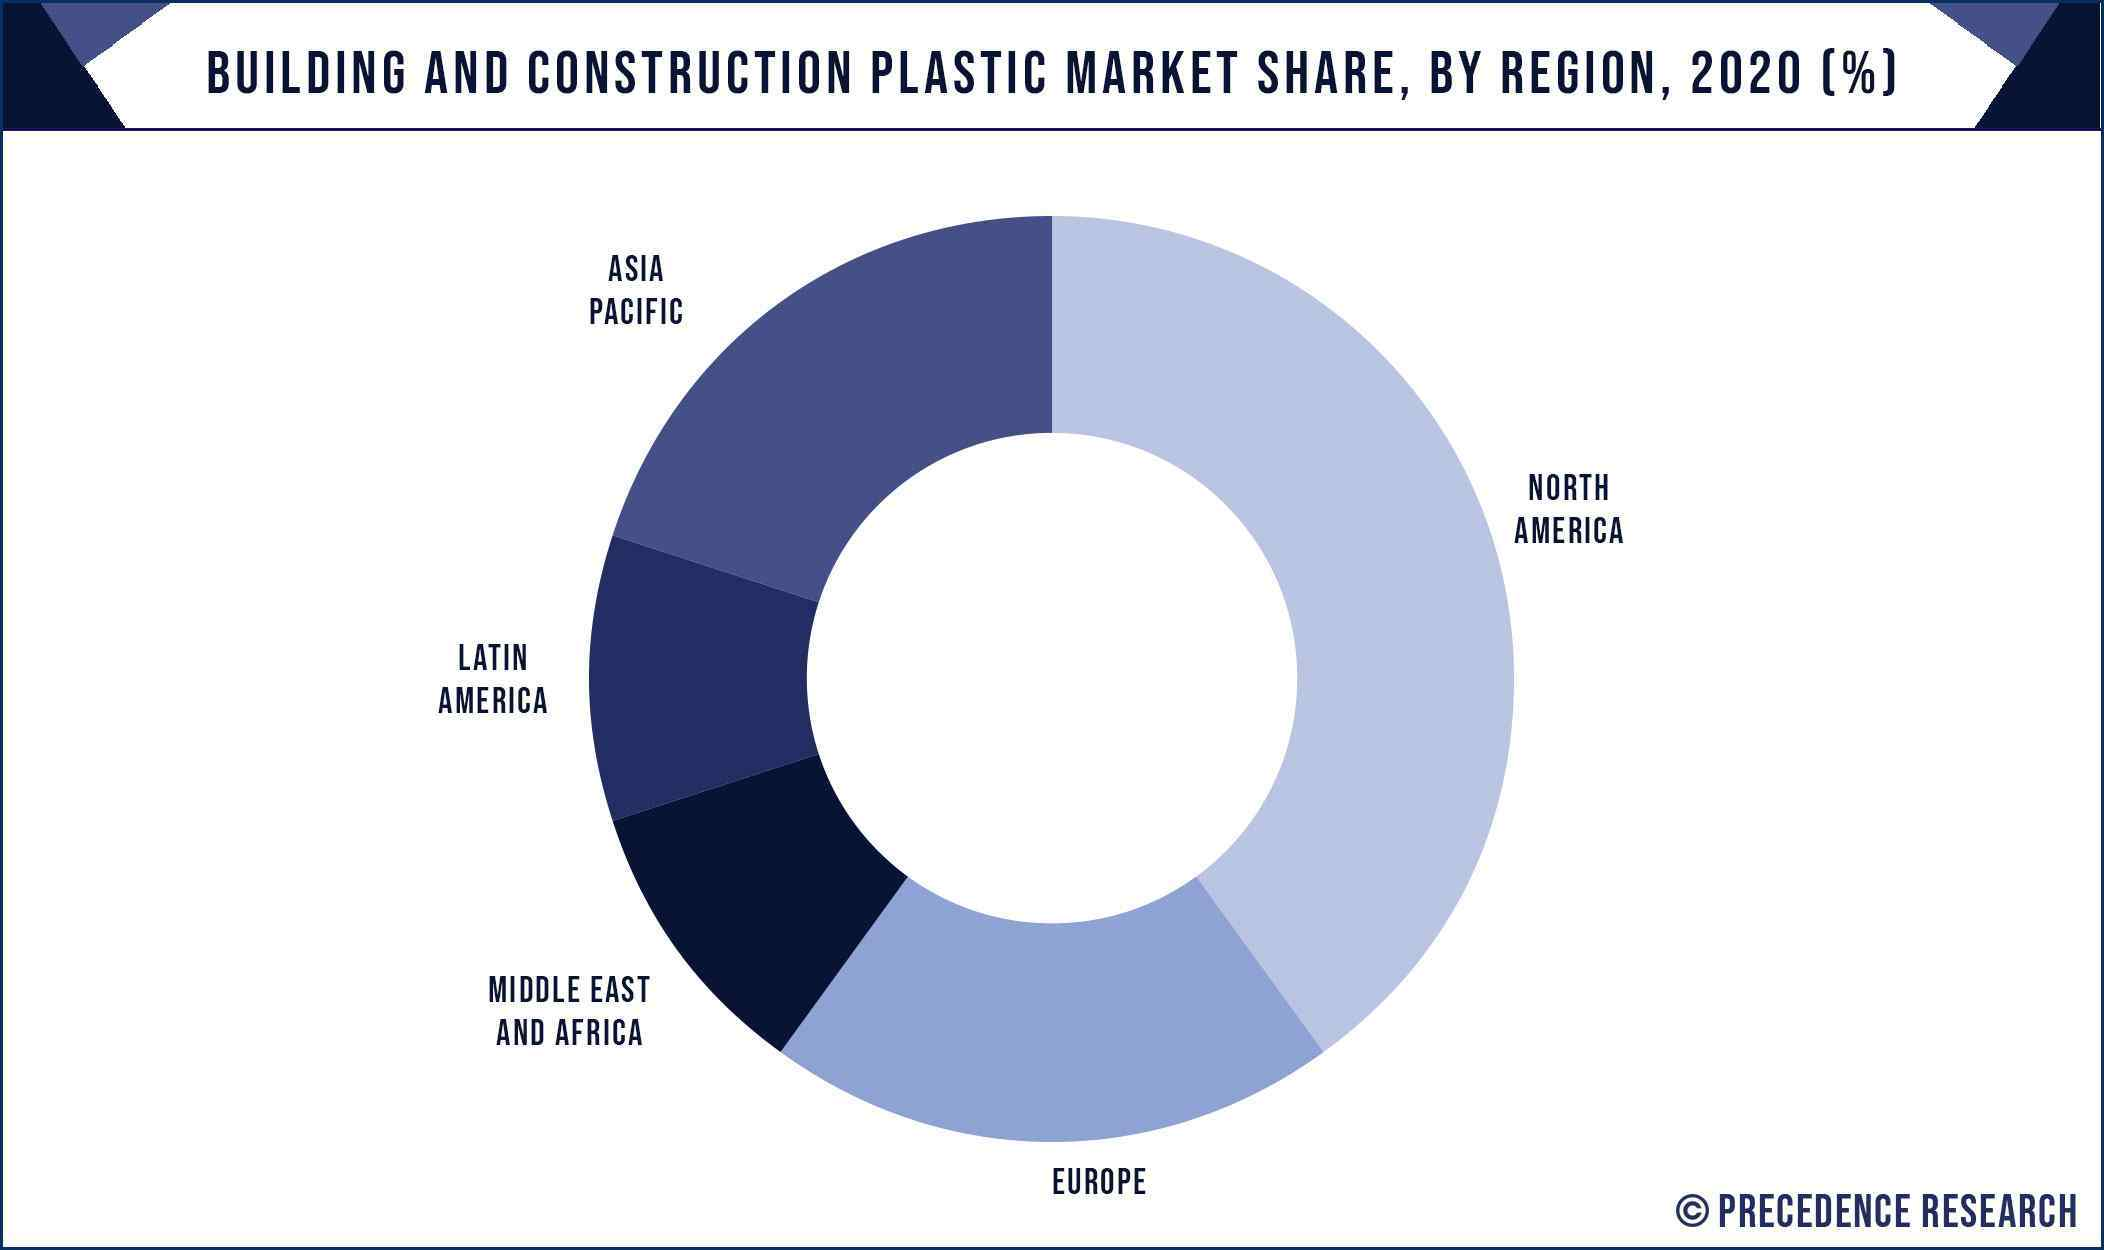 Building and Construction Plastic Market Share By Region 2020 (%)